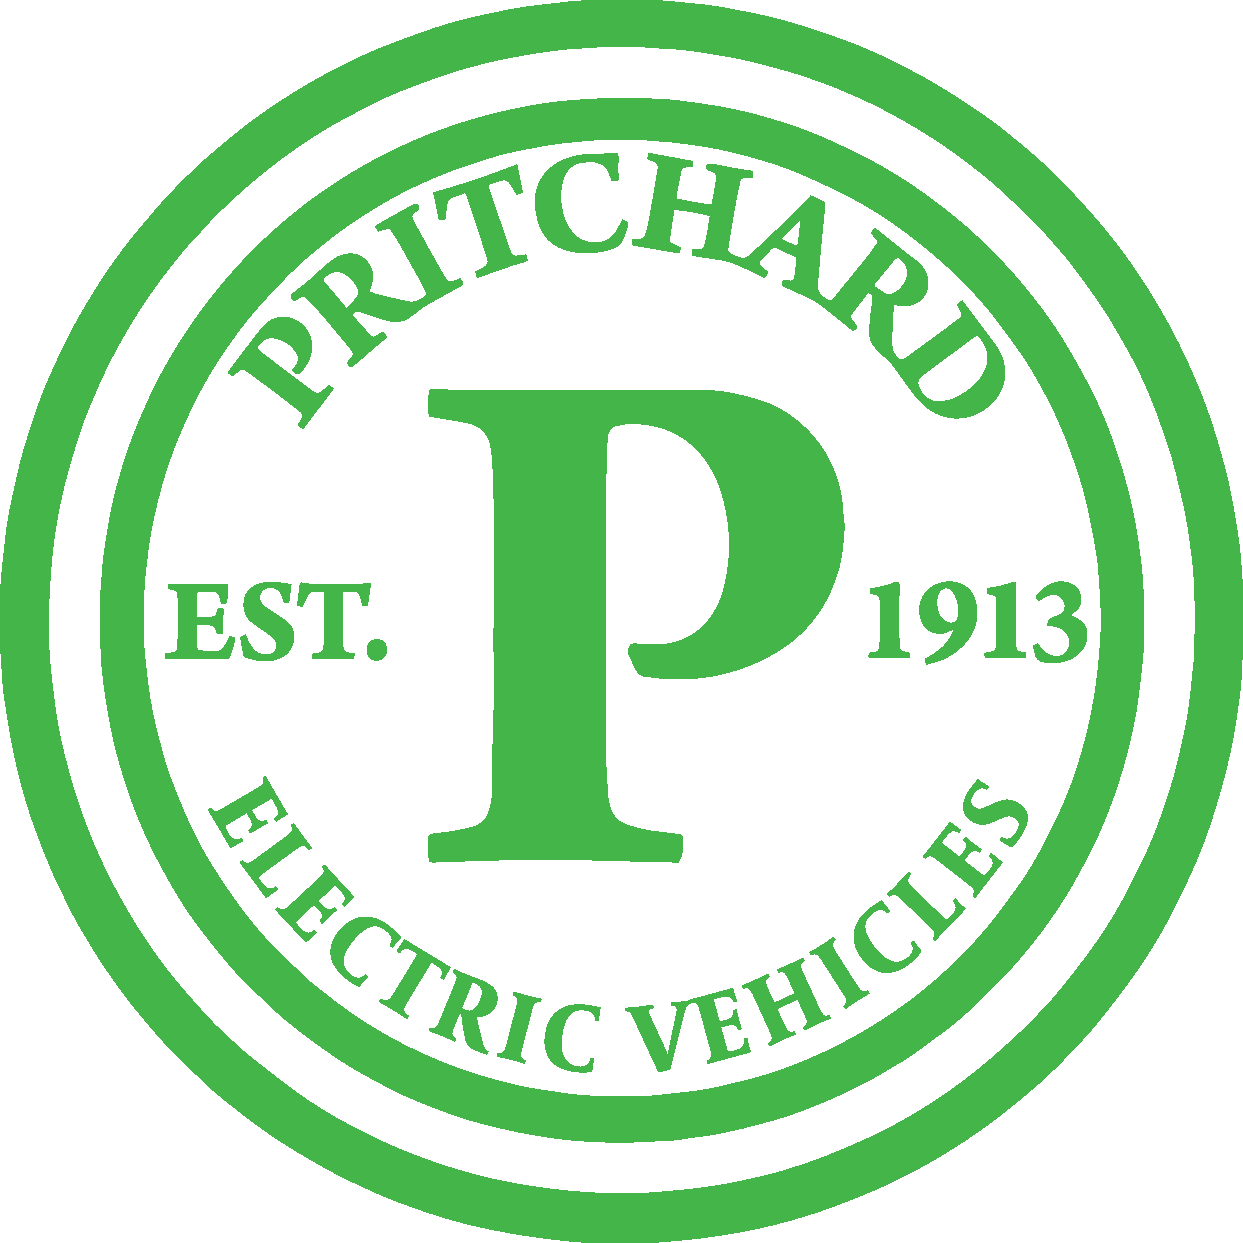 Pritchard Electric Vehicles